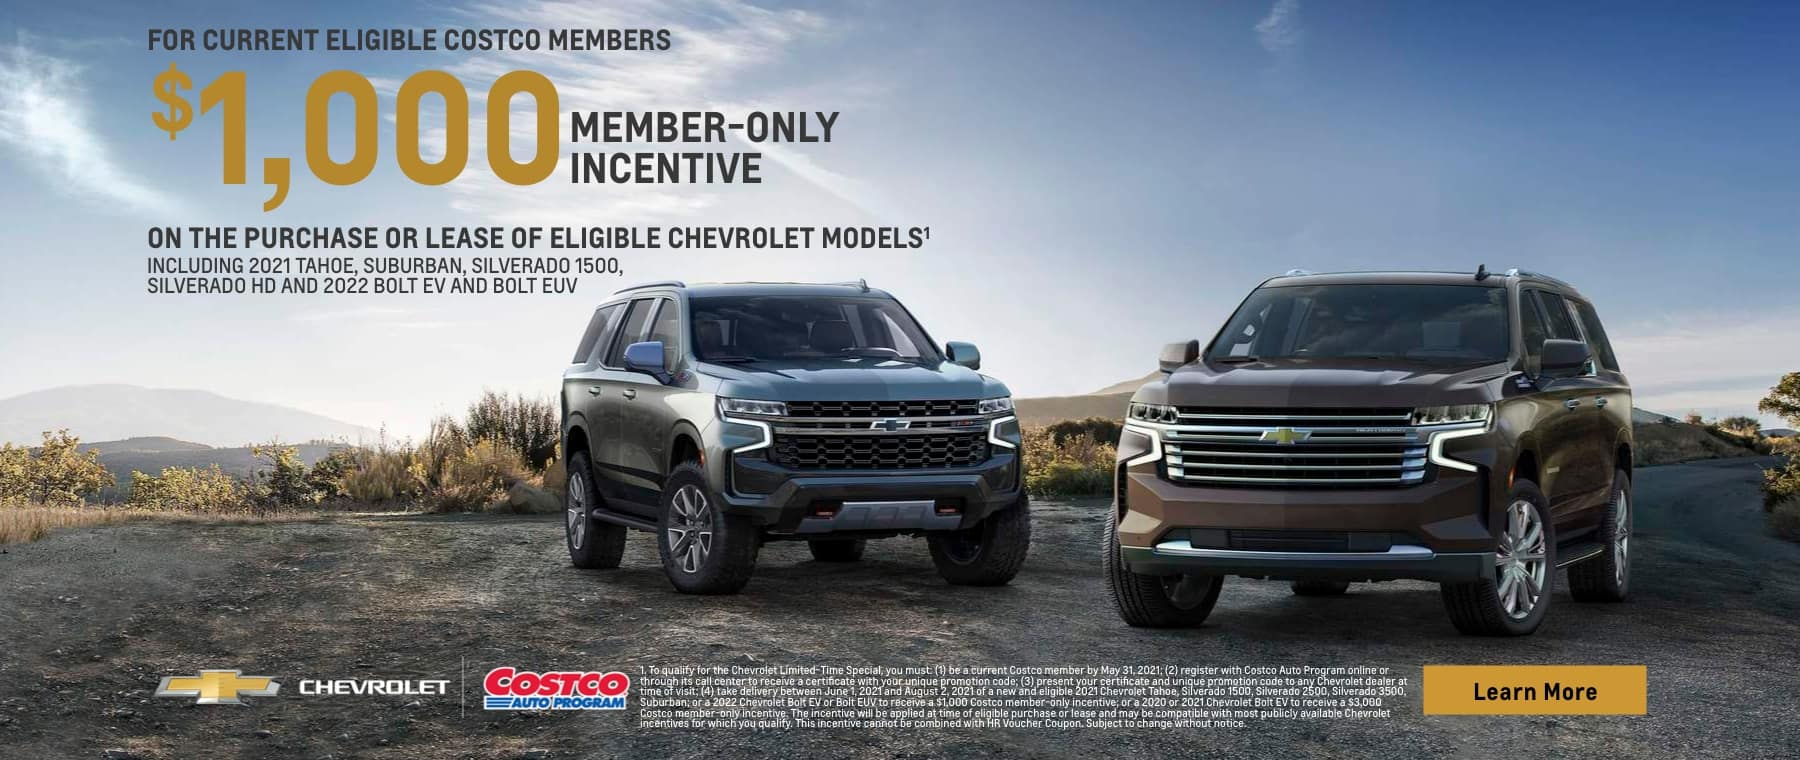 Tahoe costco members only incentive